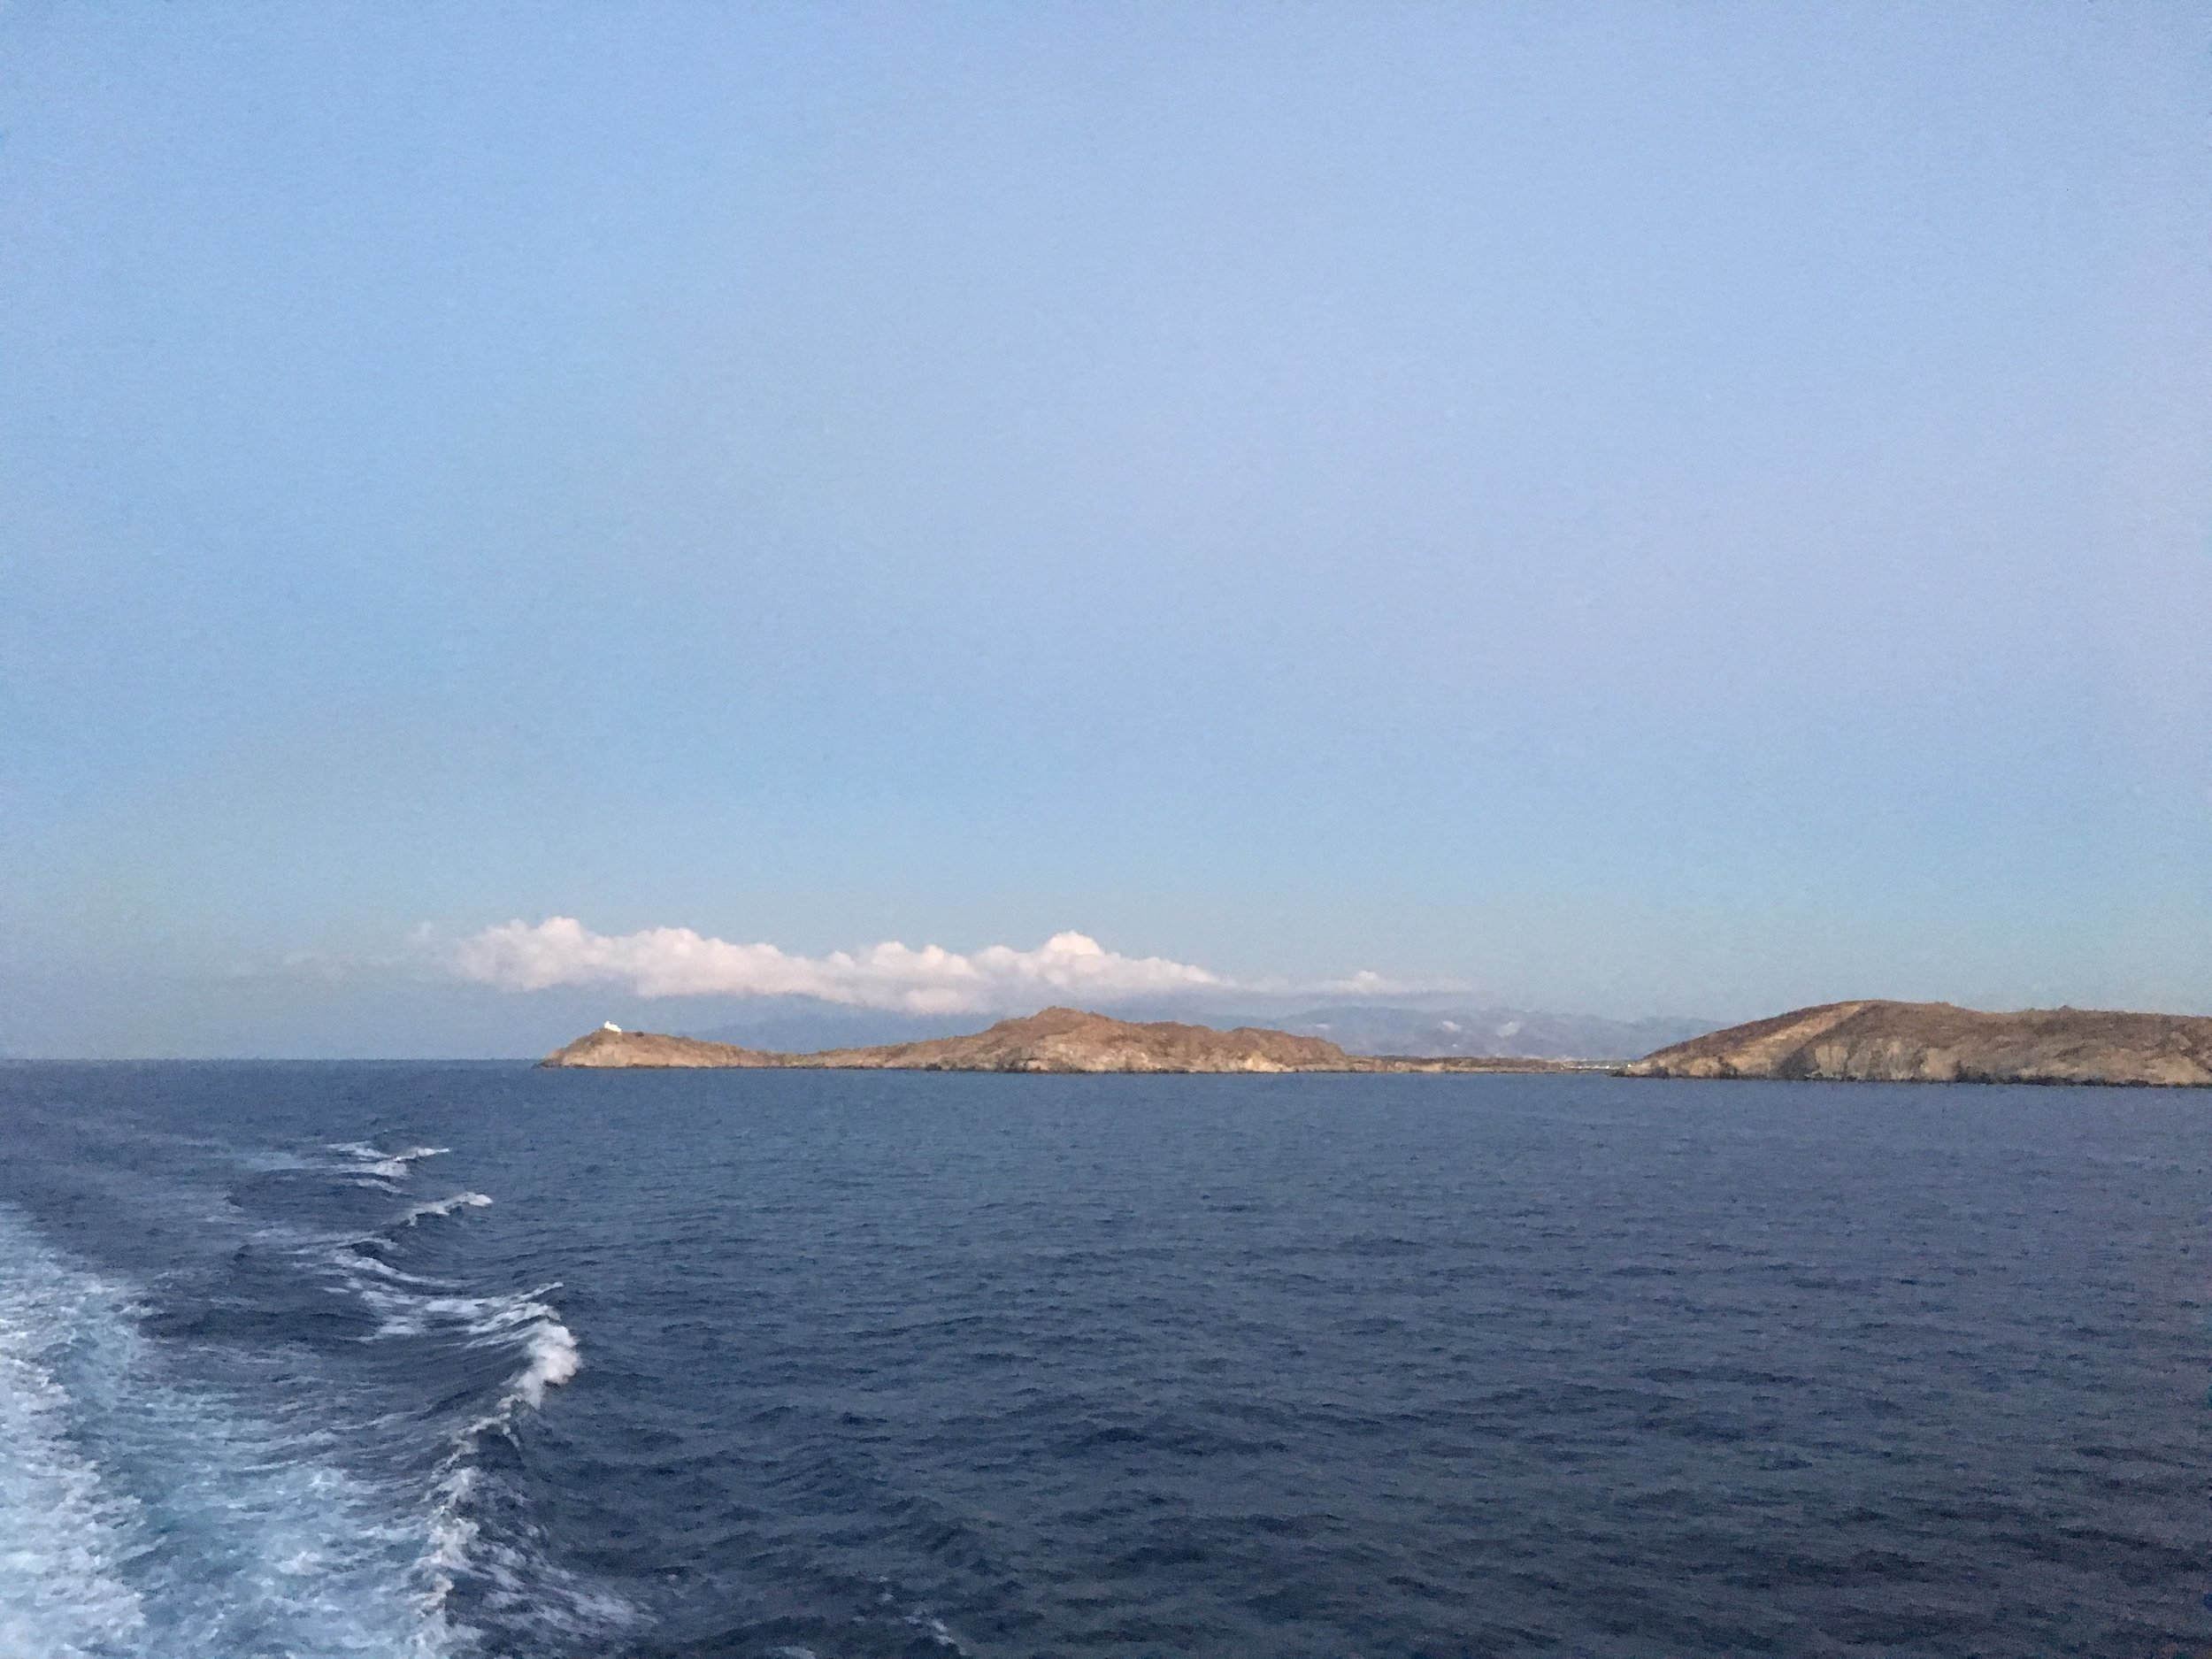 Okay this ferry ride is not so bad